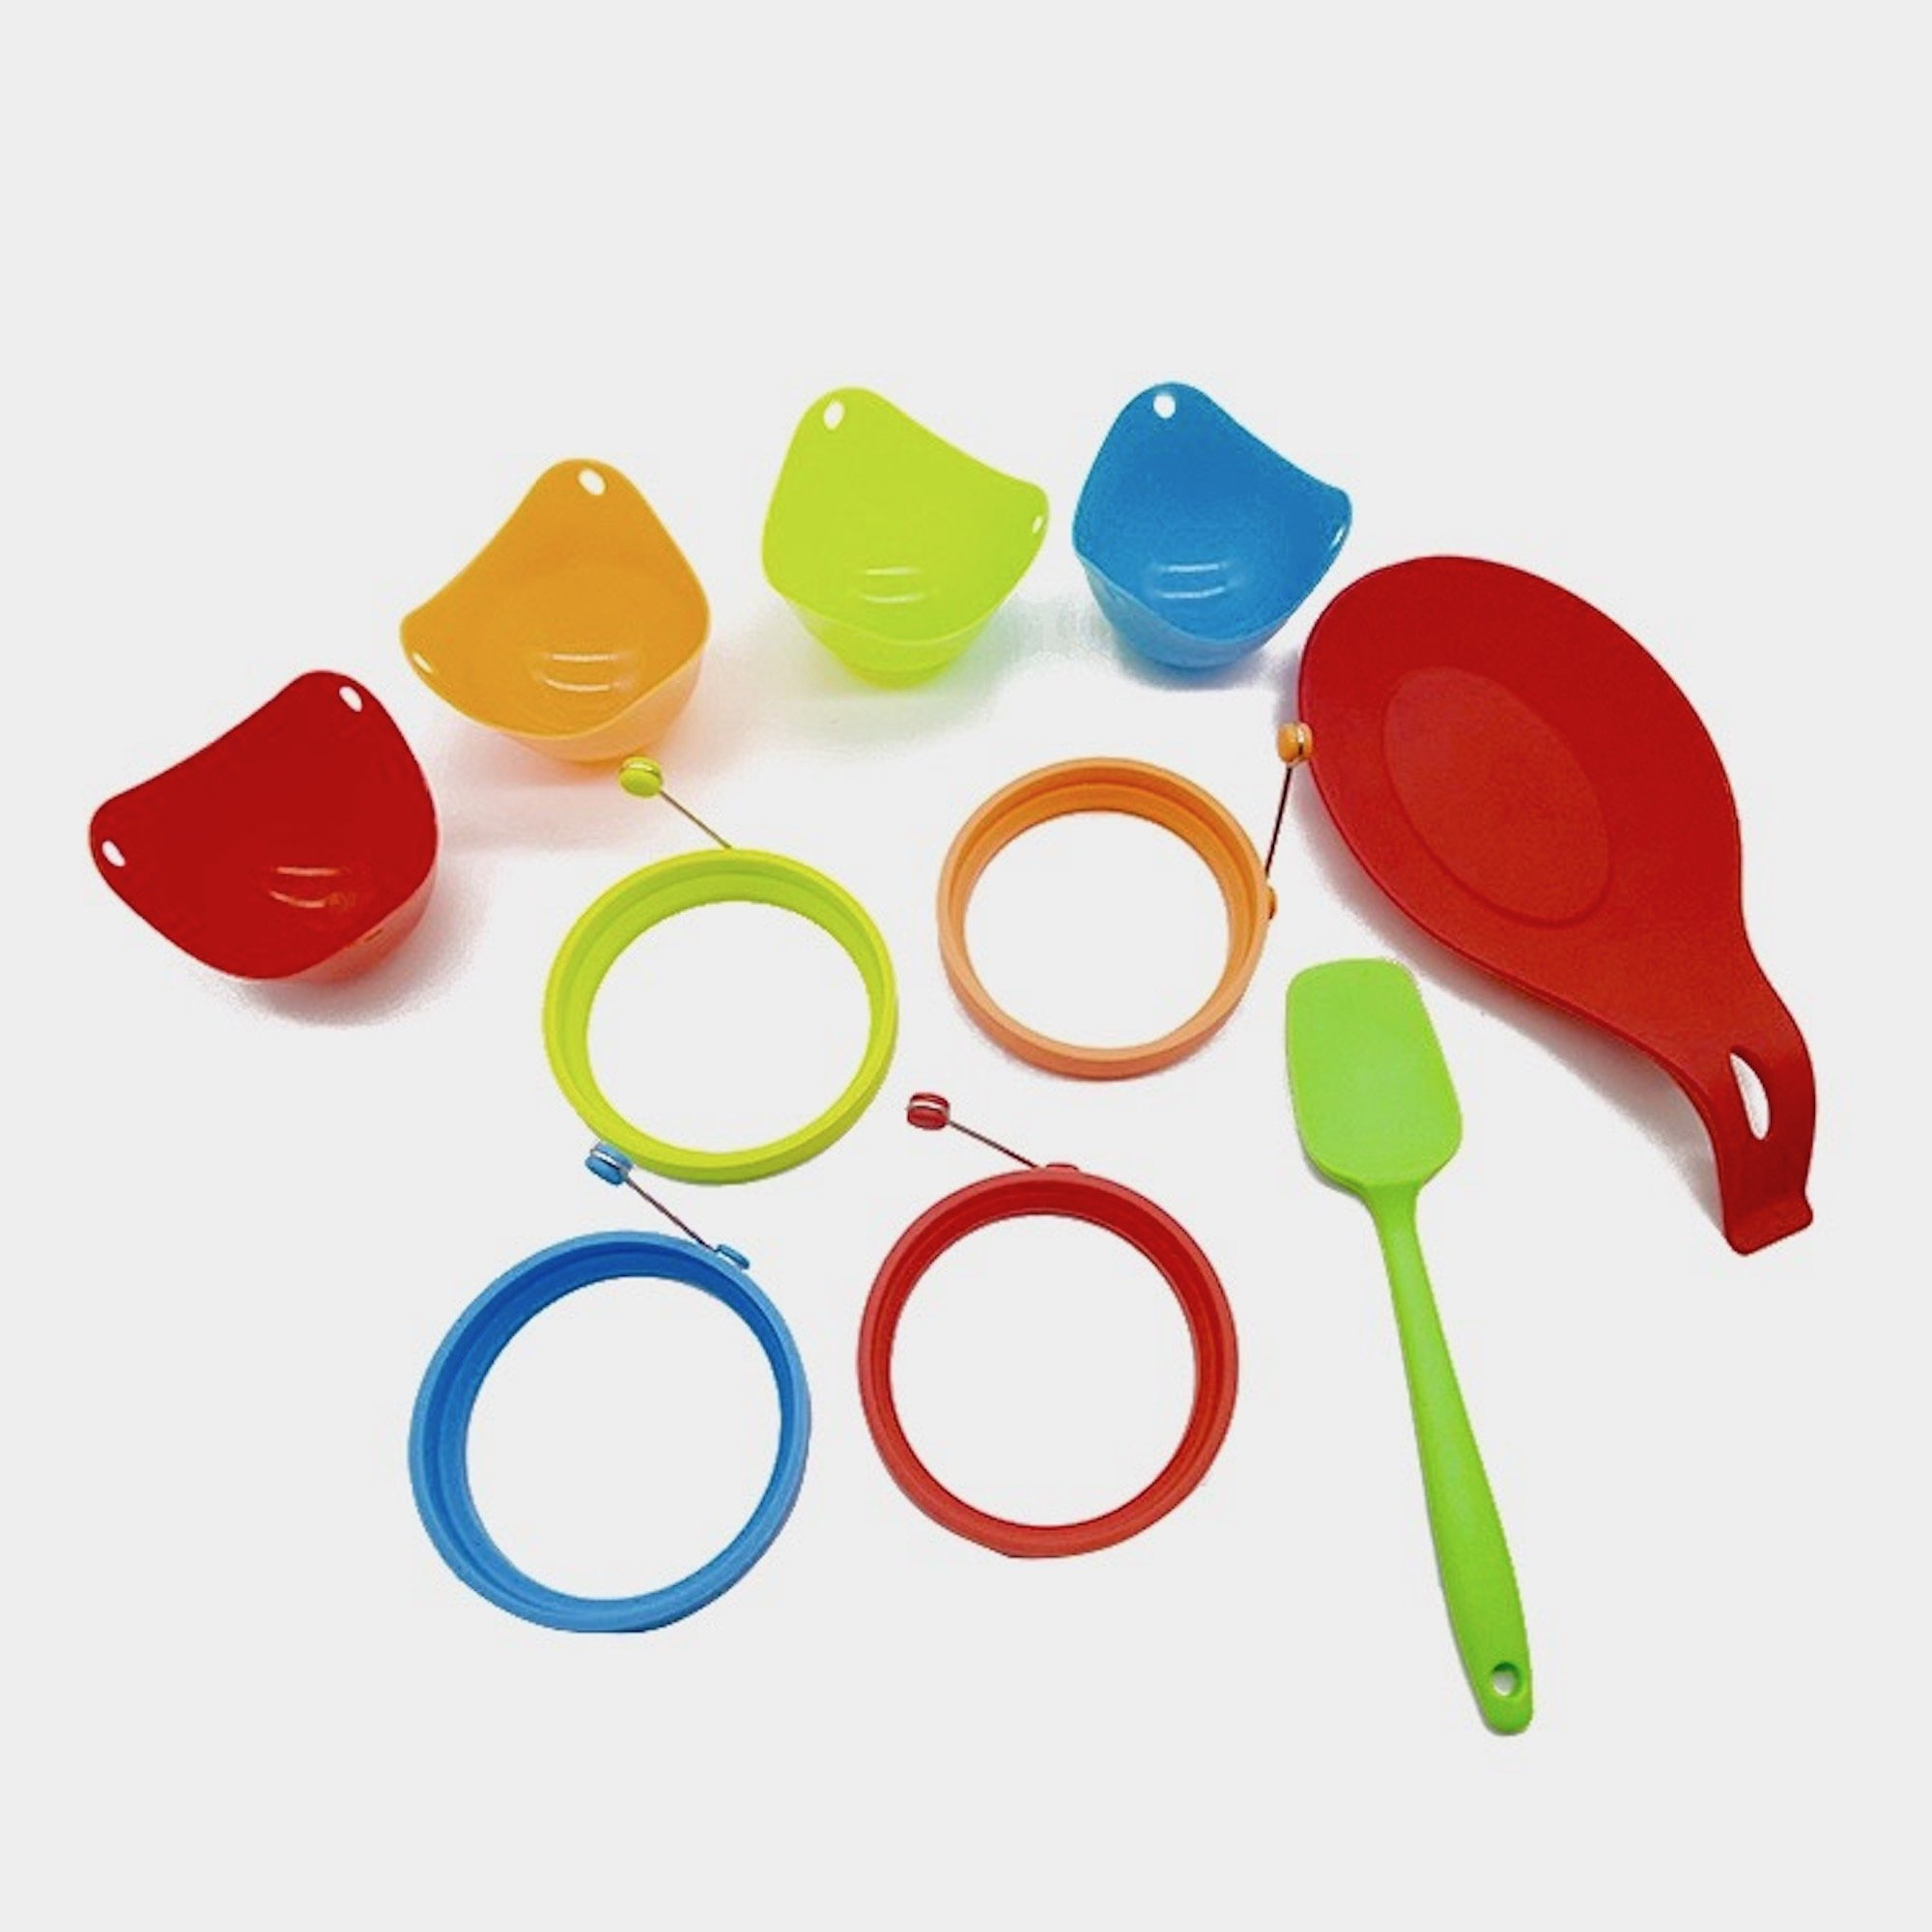 Silicone Egg Rings Non Stick, Pancake Mold (4) + Silicone Egg Poacher Cups (4) + Silicone Spatula (1) + Silicone Spoon Holder (1), Comfortable, easy to clean, non-toxic, BPA Free, SET 10